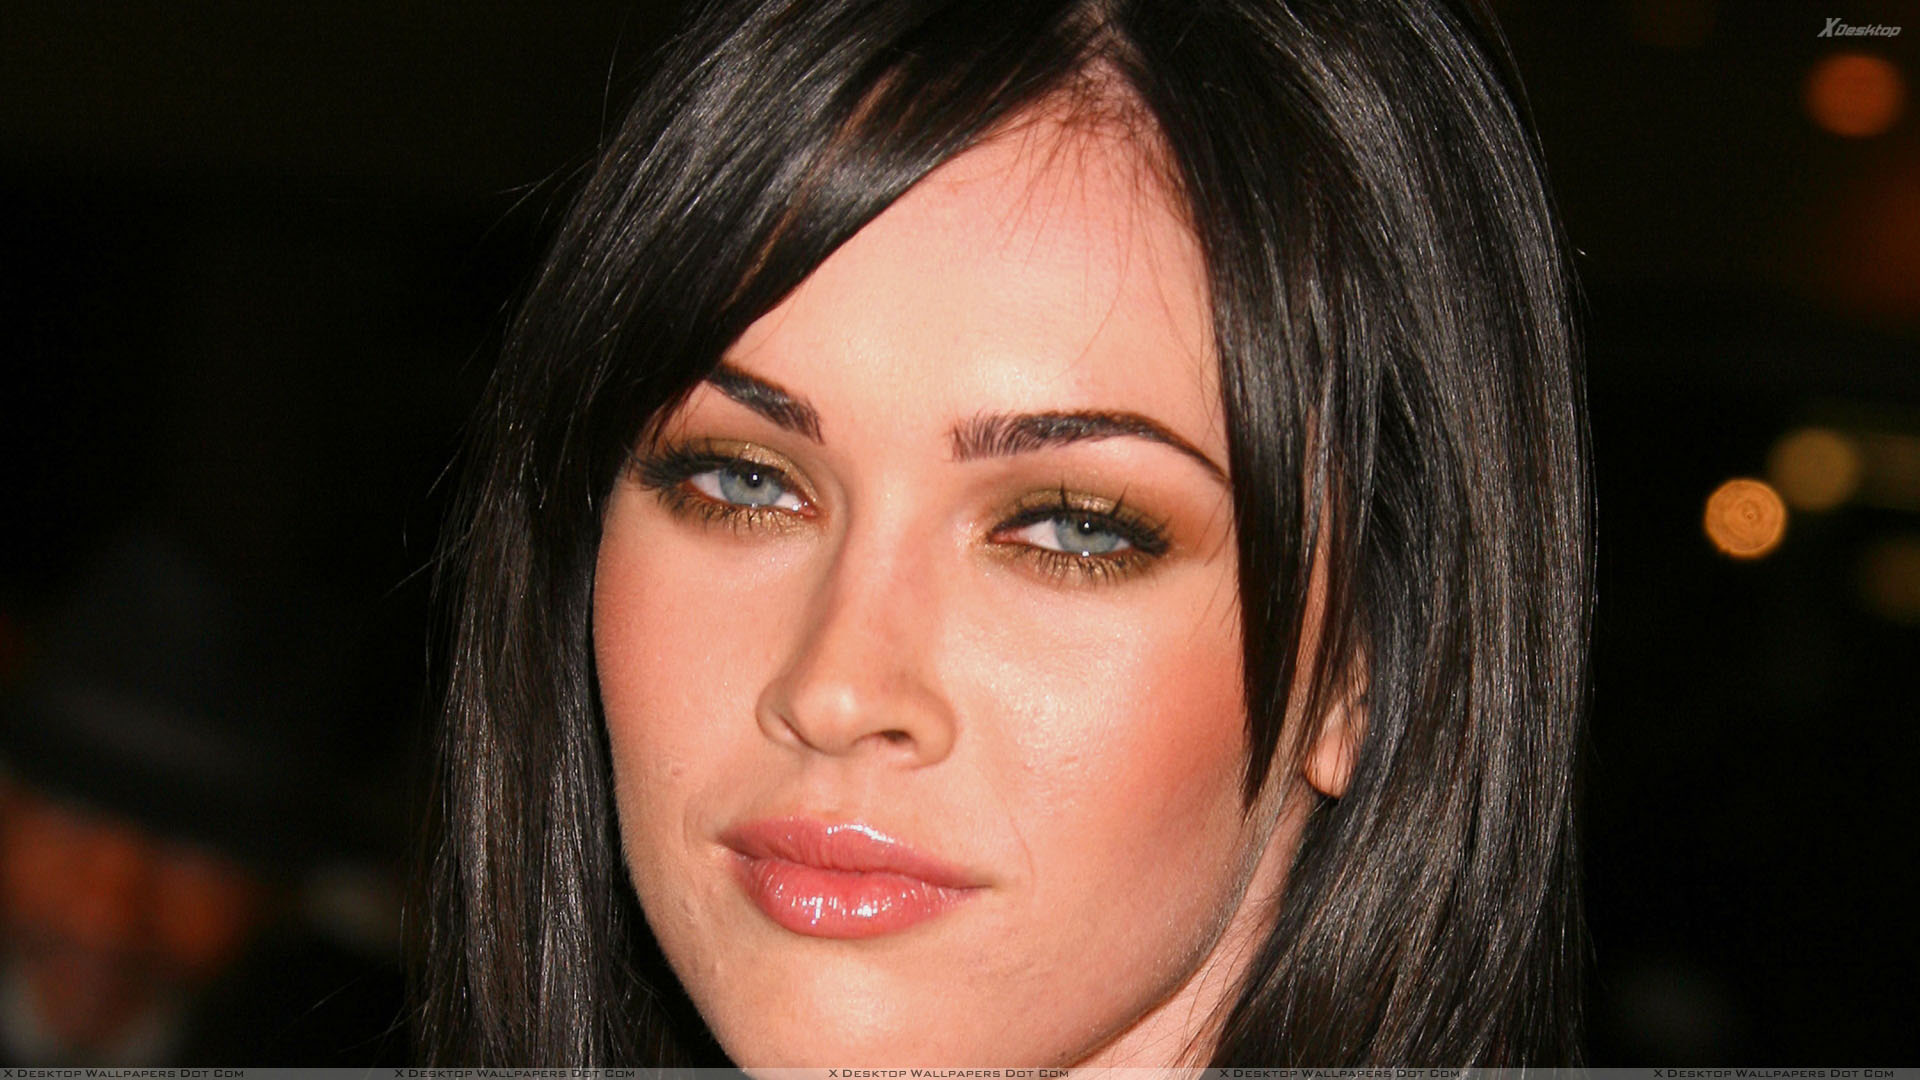 megan fox wet lips and cute eyes face closeup wallpaper